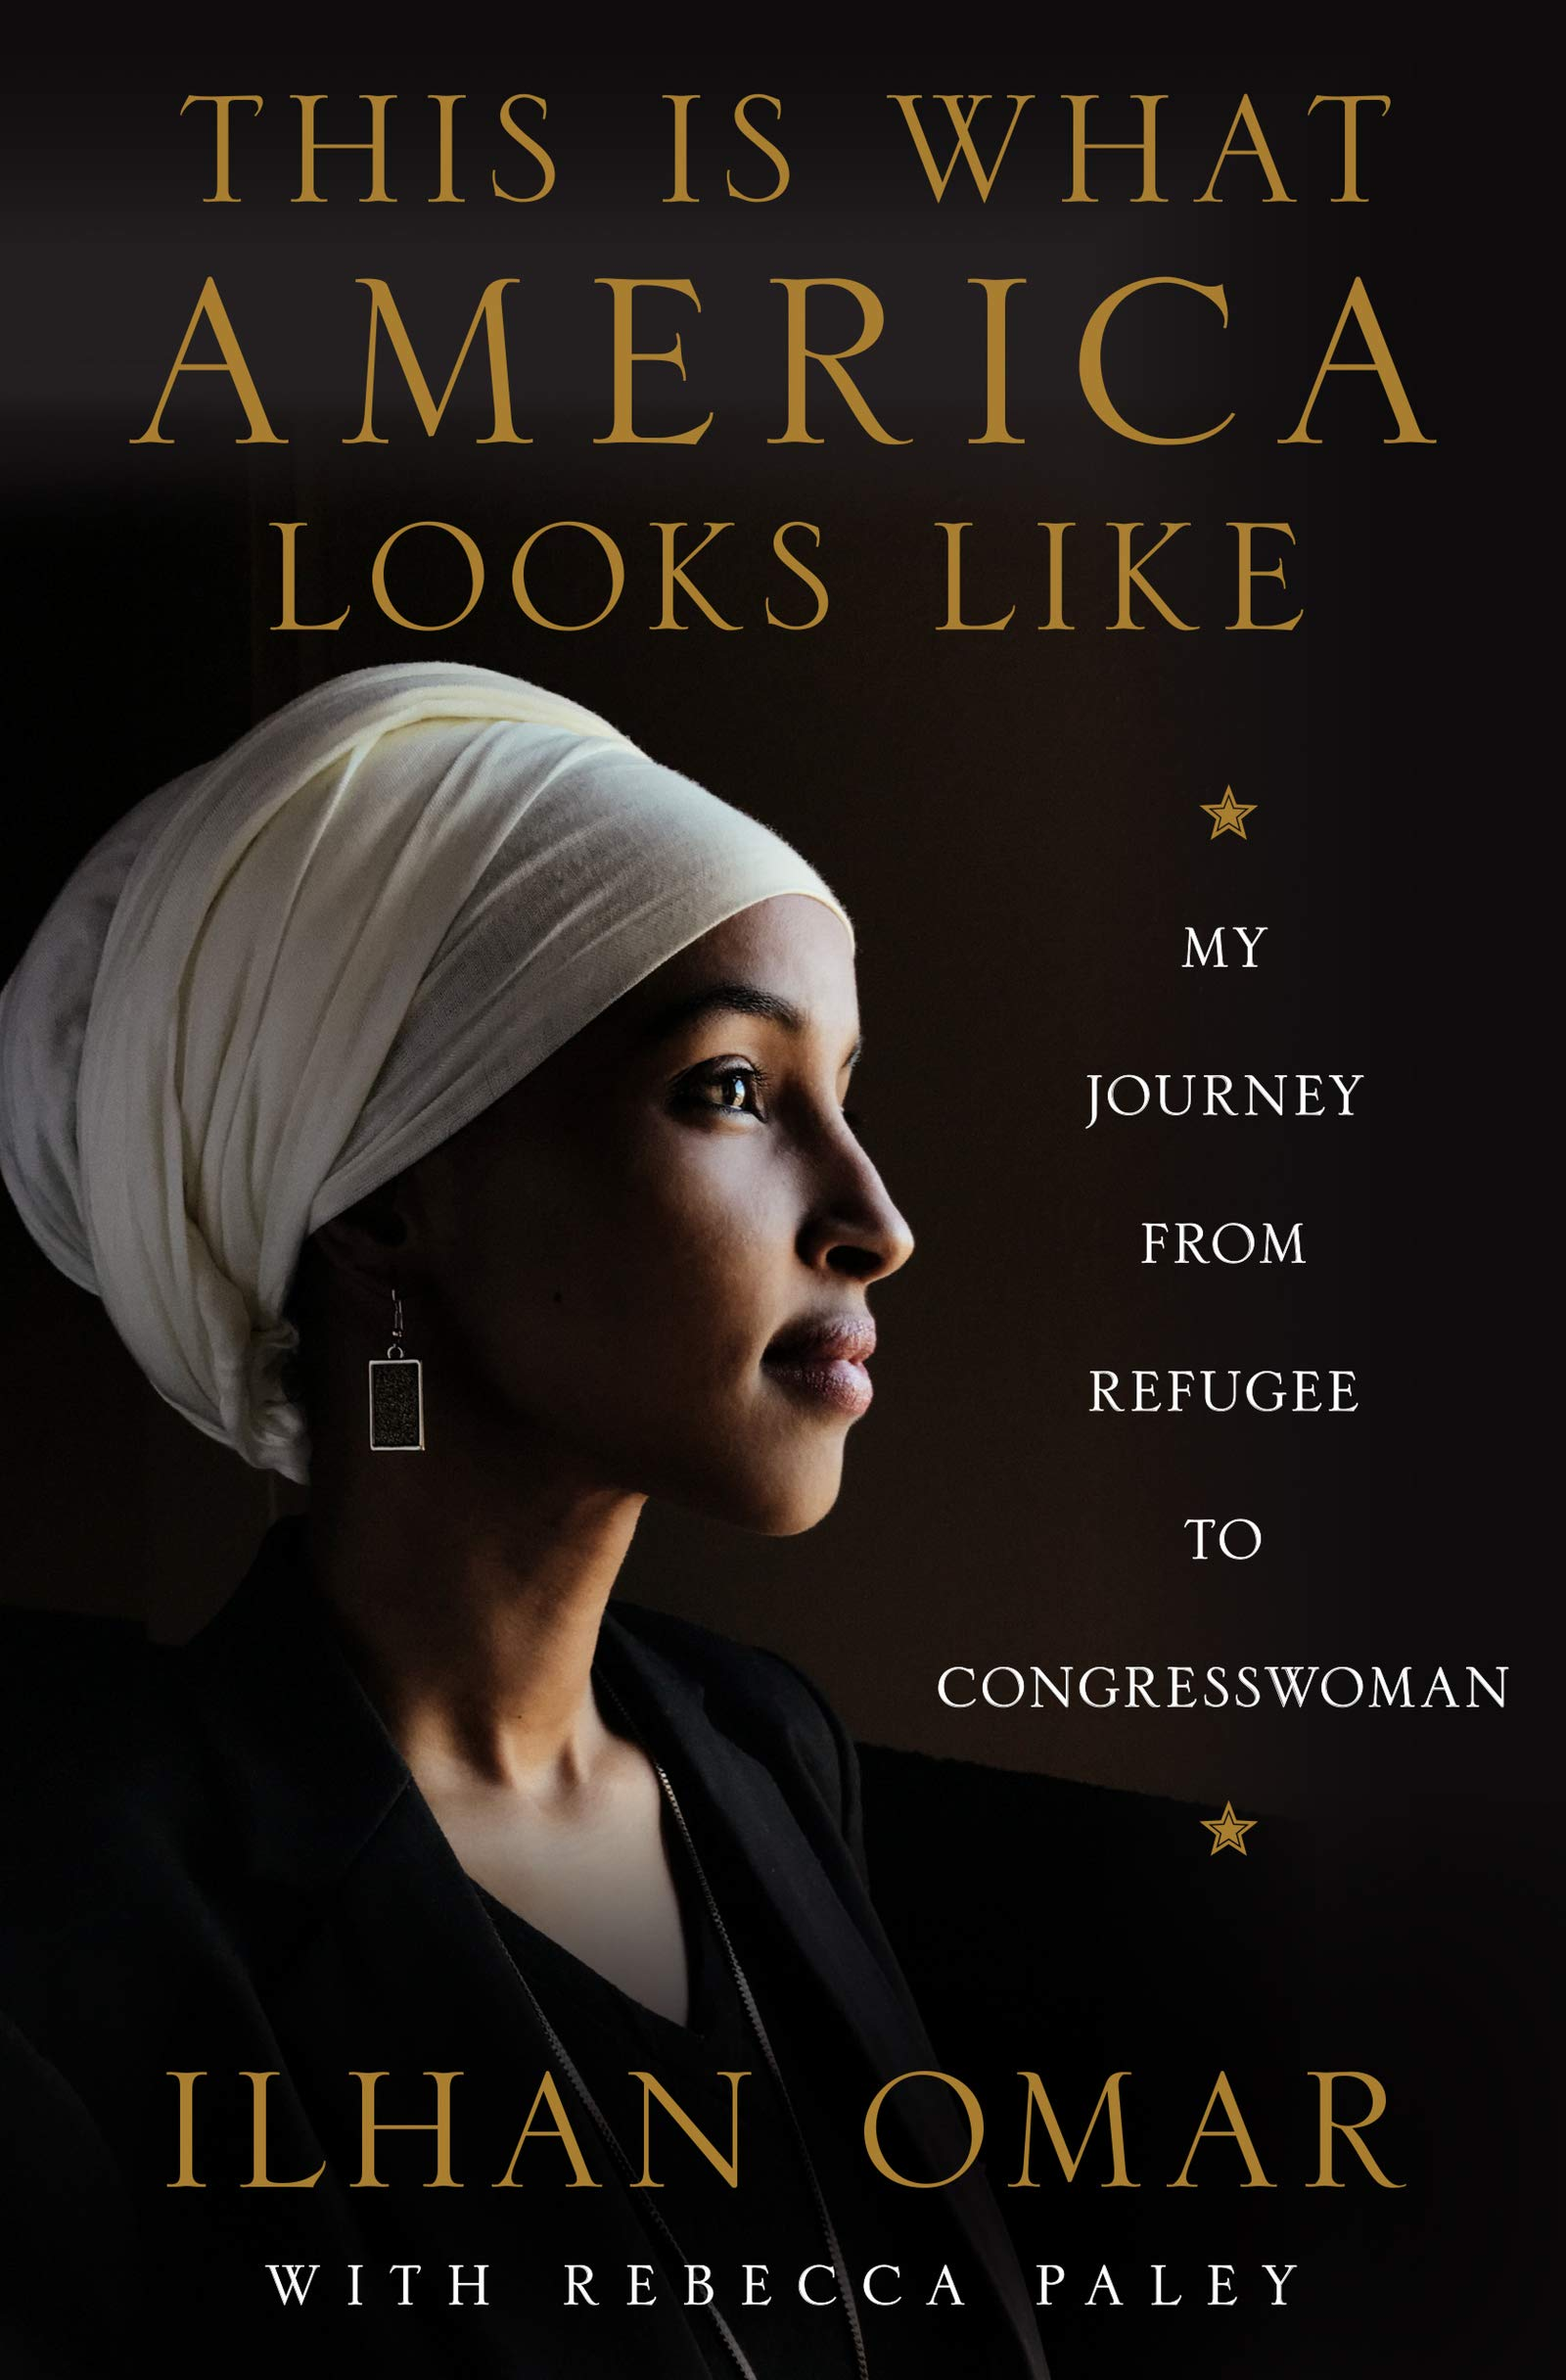 Ilhan Omar, This Is What America Looks Like: My Journey from Refugee to Congresswoman